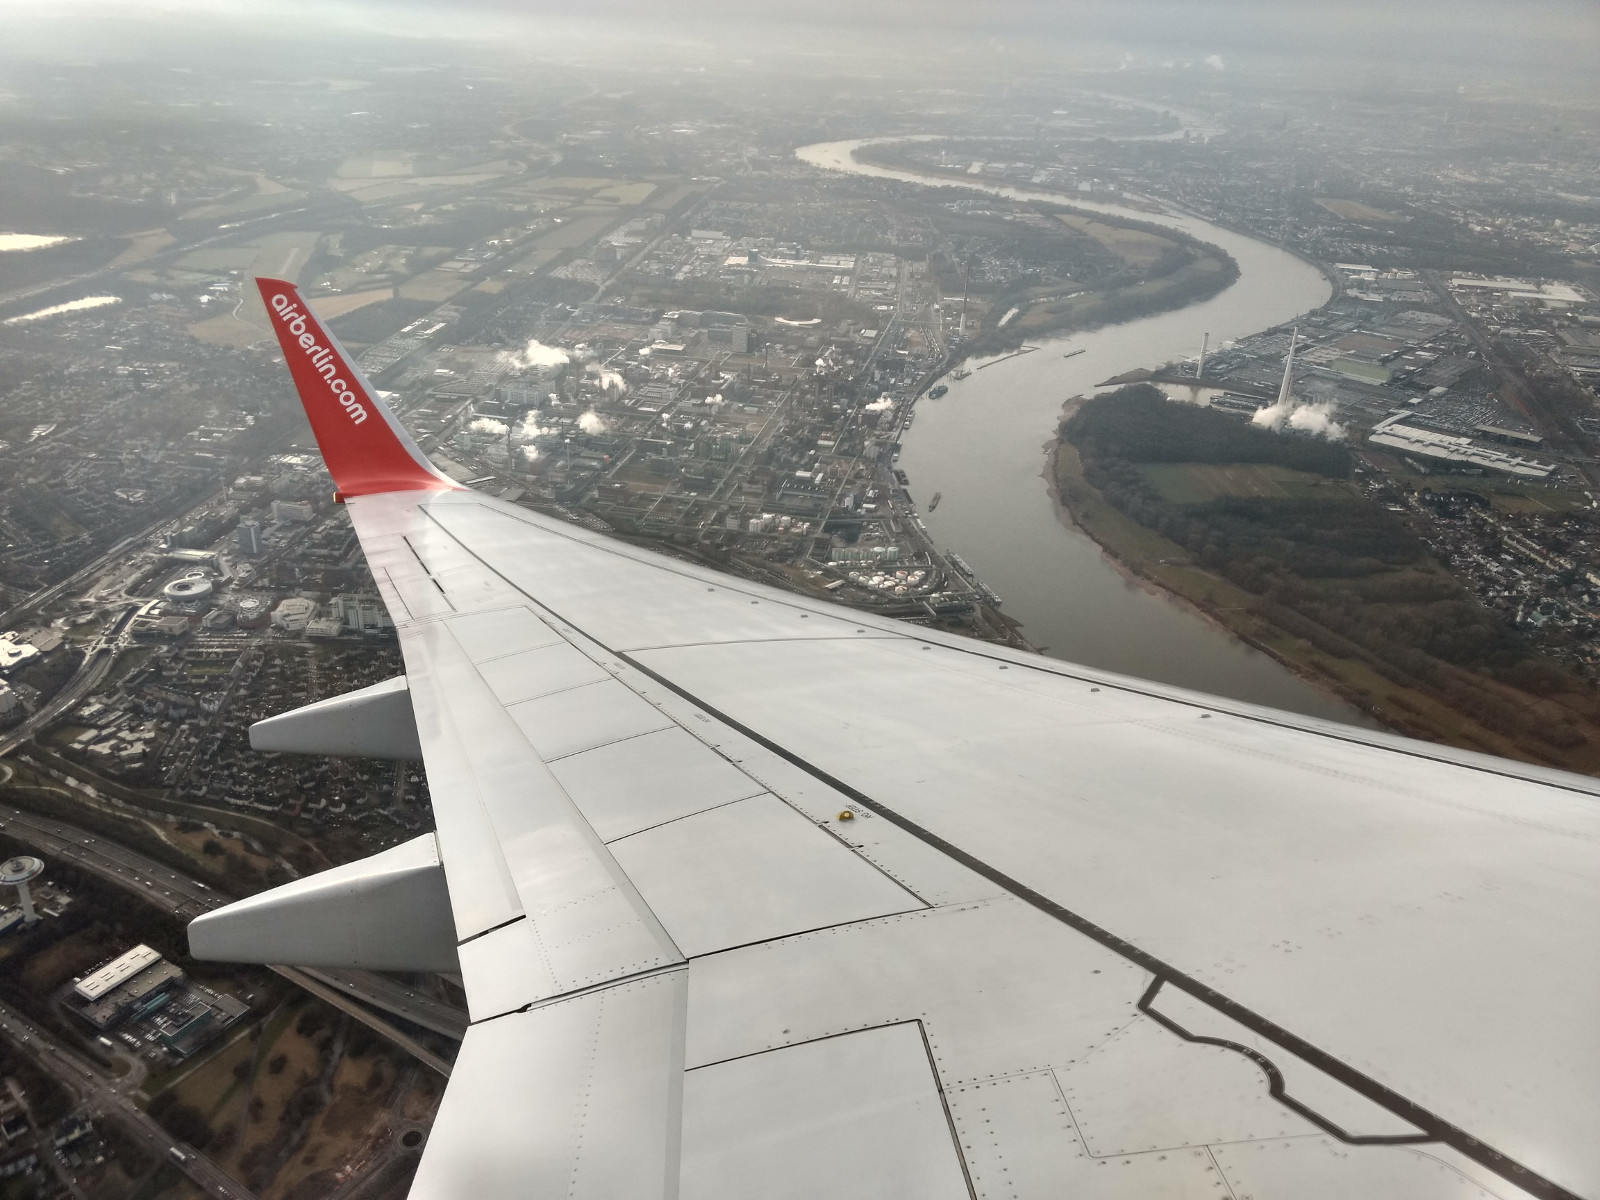 A photo of cologne out of an airplane with the wing of the plane